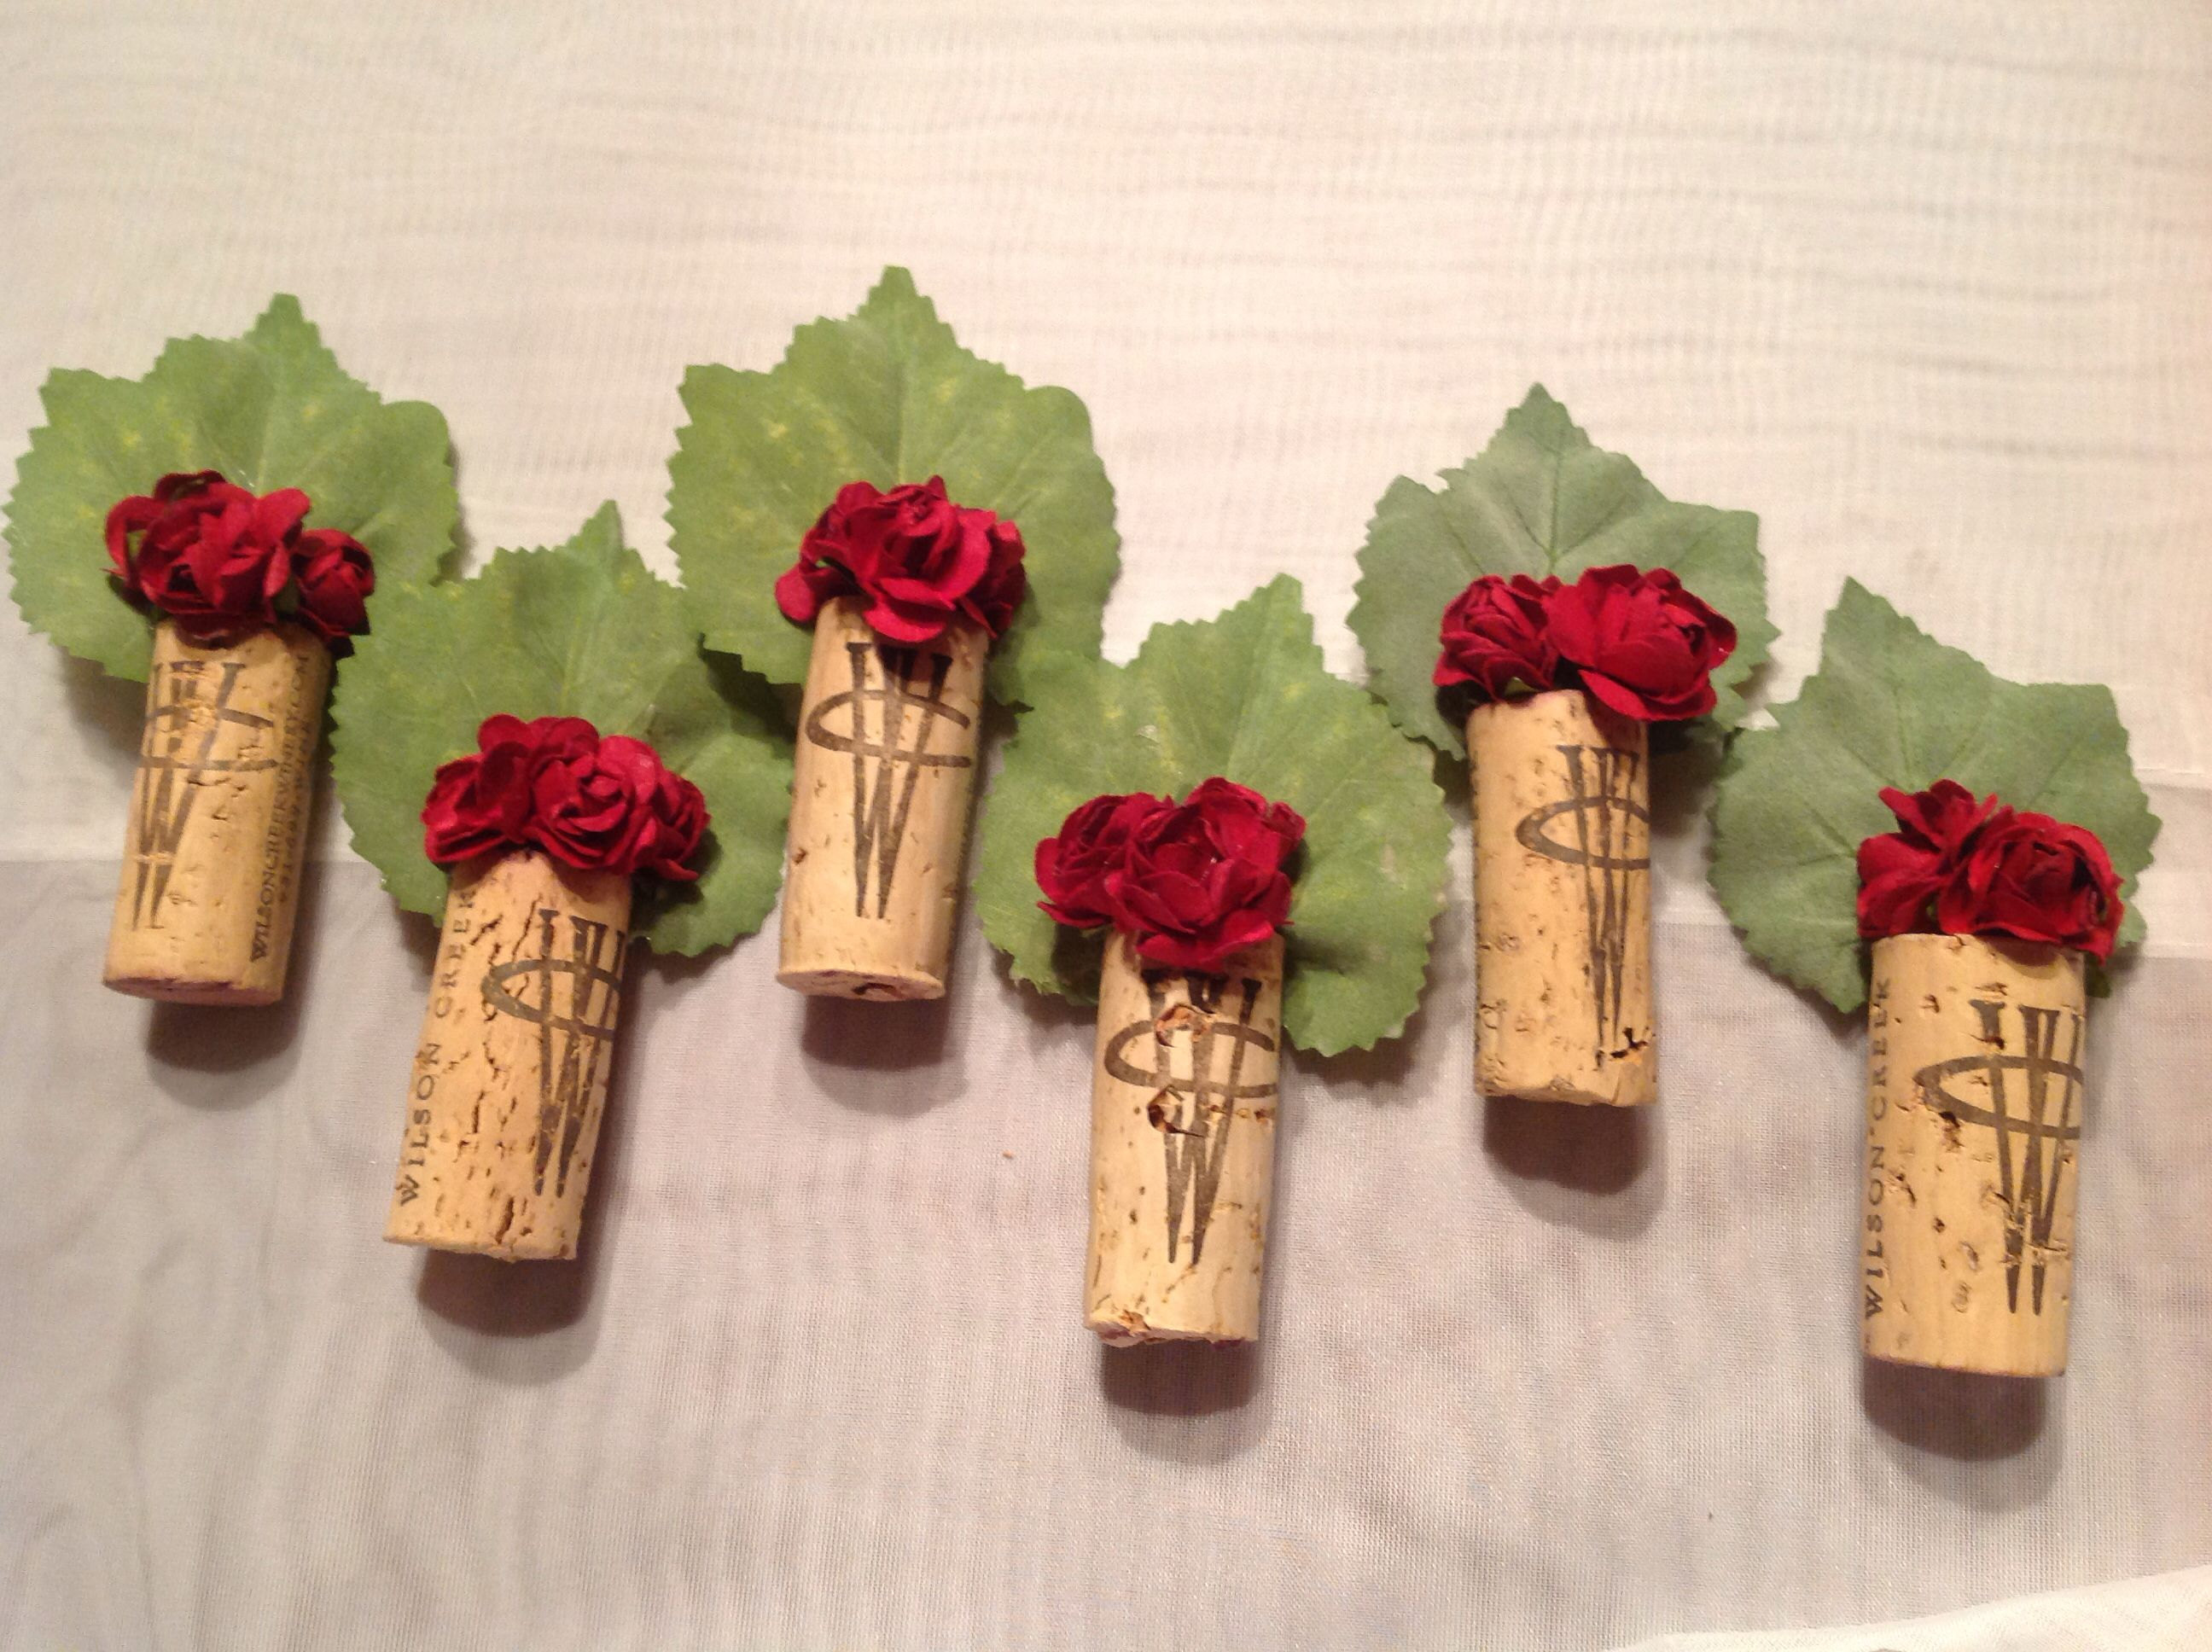 ~Wine Corks Corsage Boutonnieres For A Wine Themed Wedding